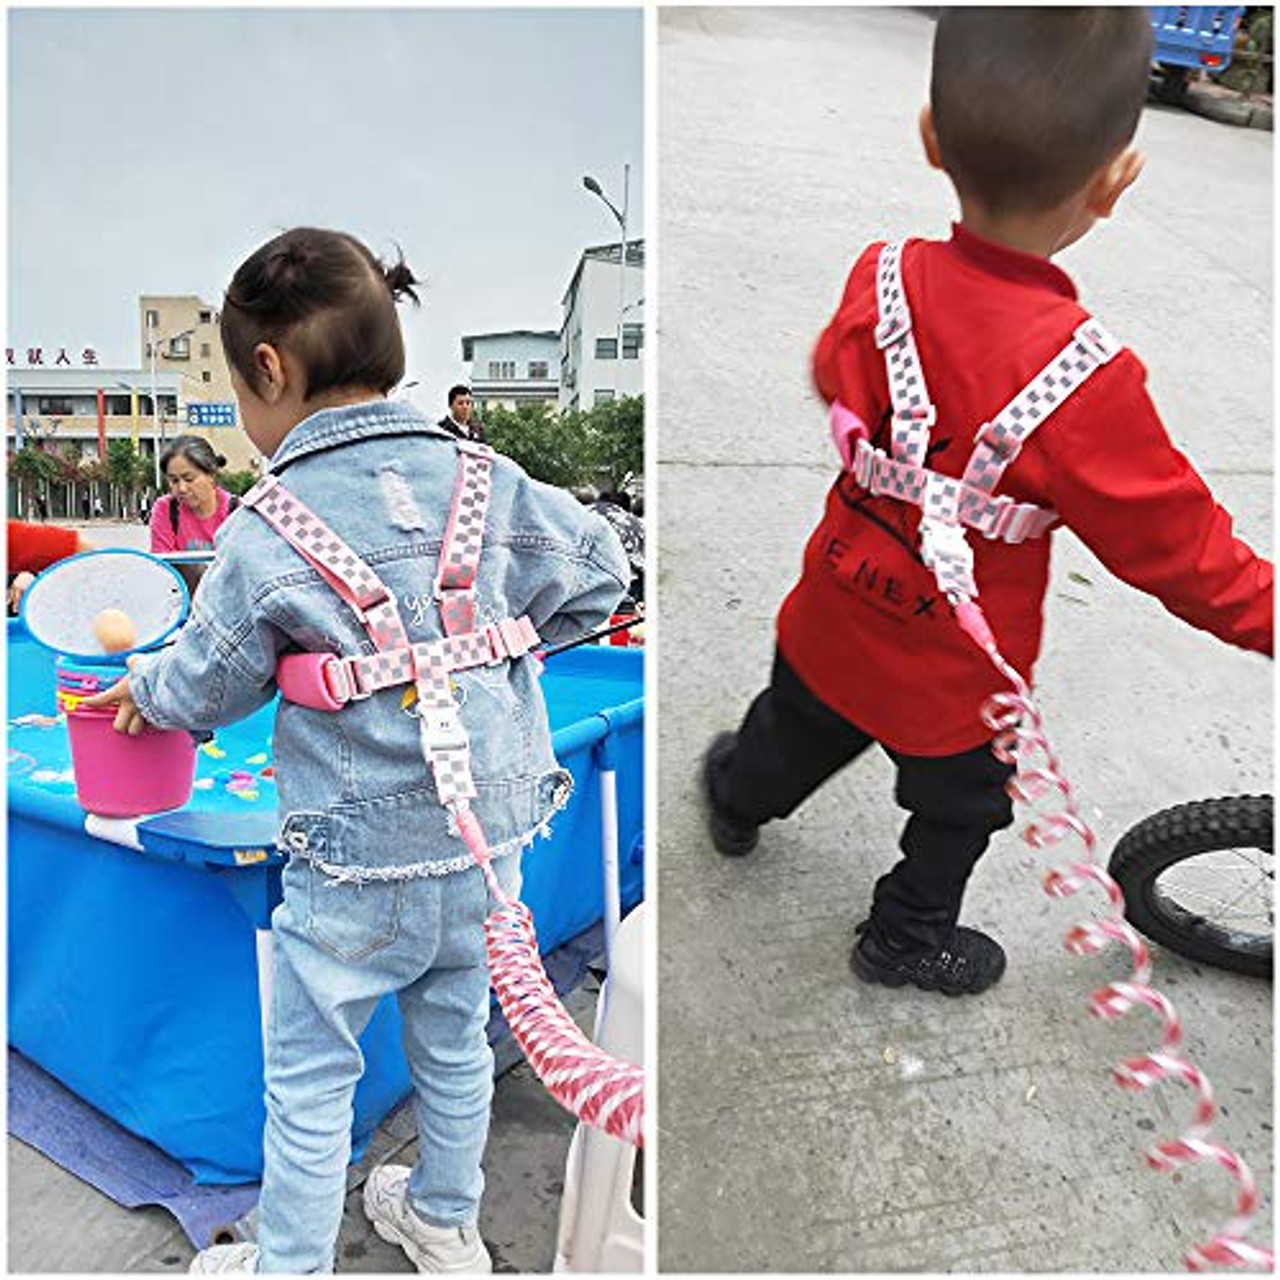 2 in 1 Baby Toddler Leash Child Kid Walking Harness Pink Anti Lost Wrist Link